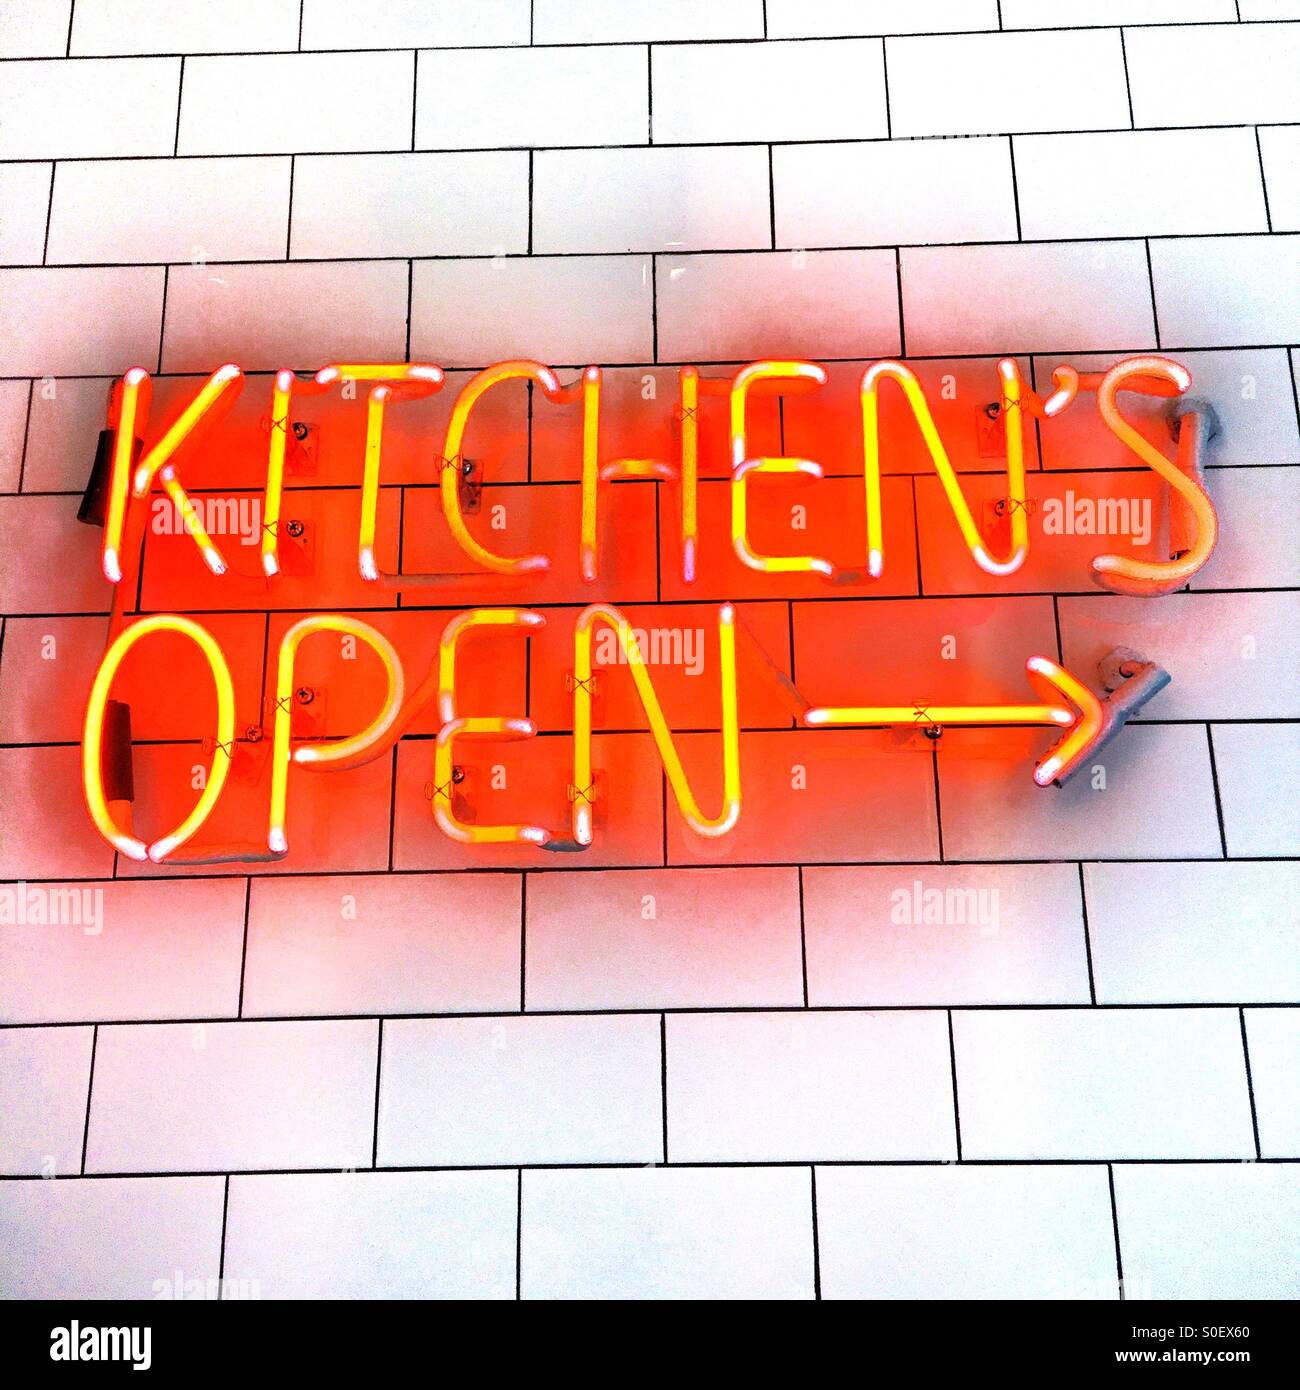 A Bright Red And Yellow Neon Sign On S White Tile Wall